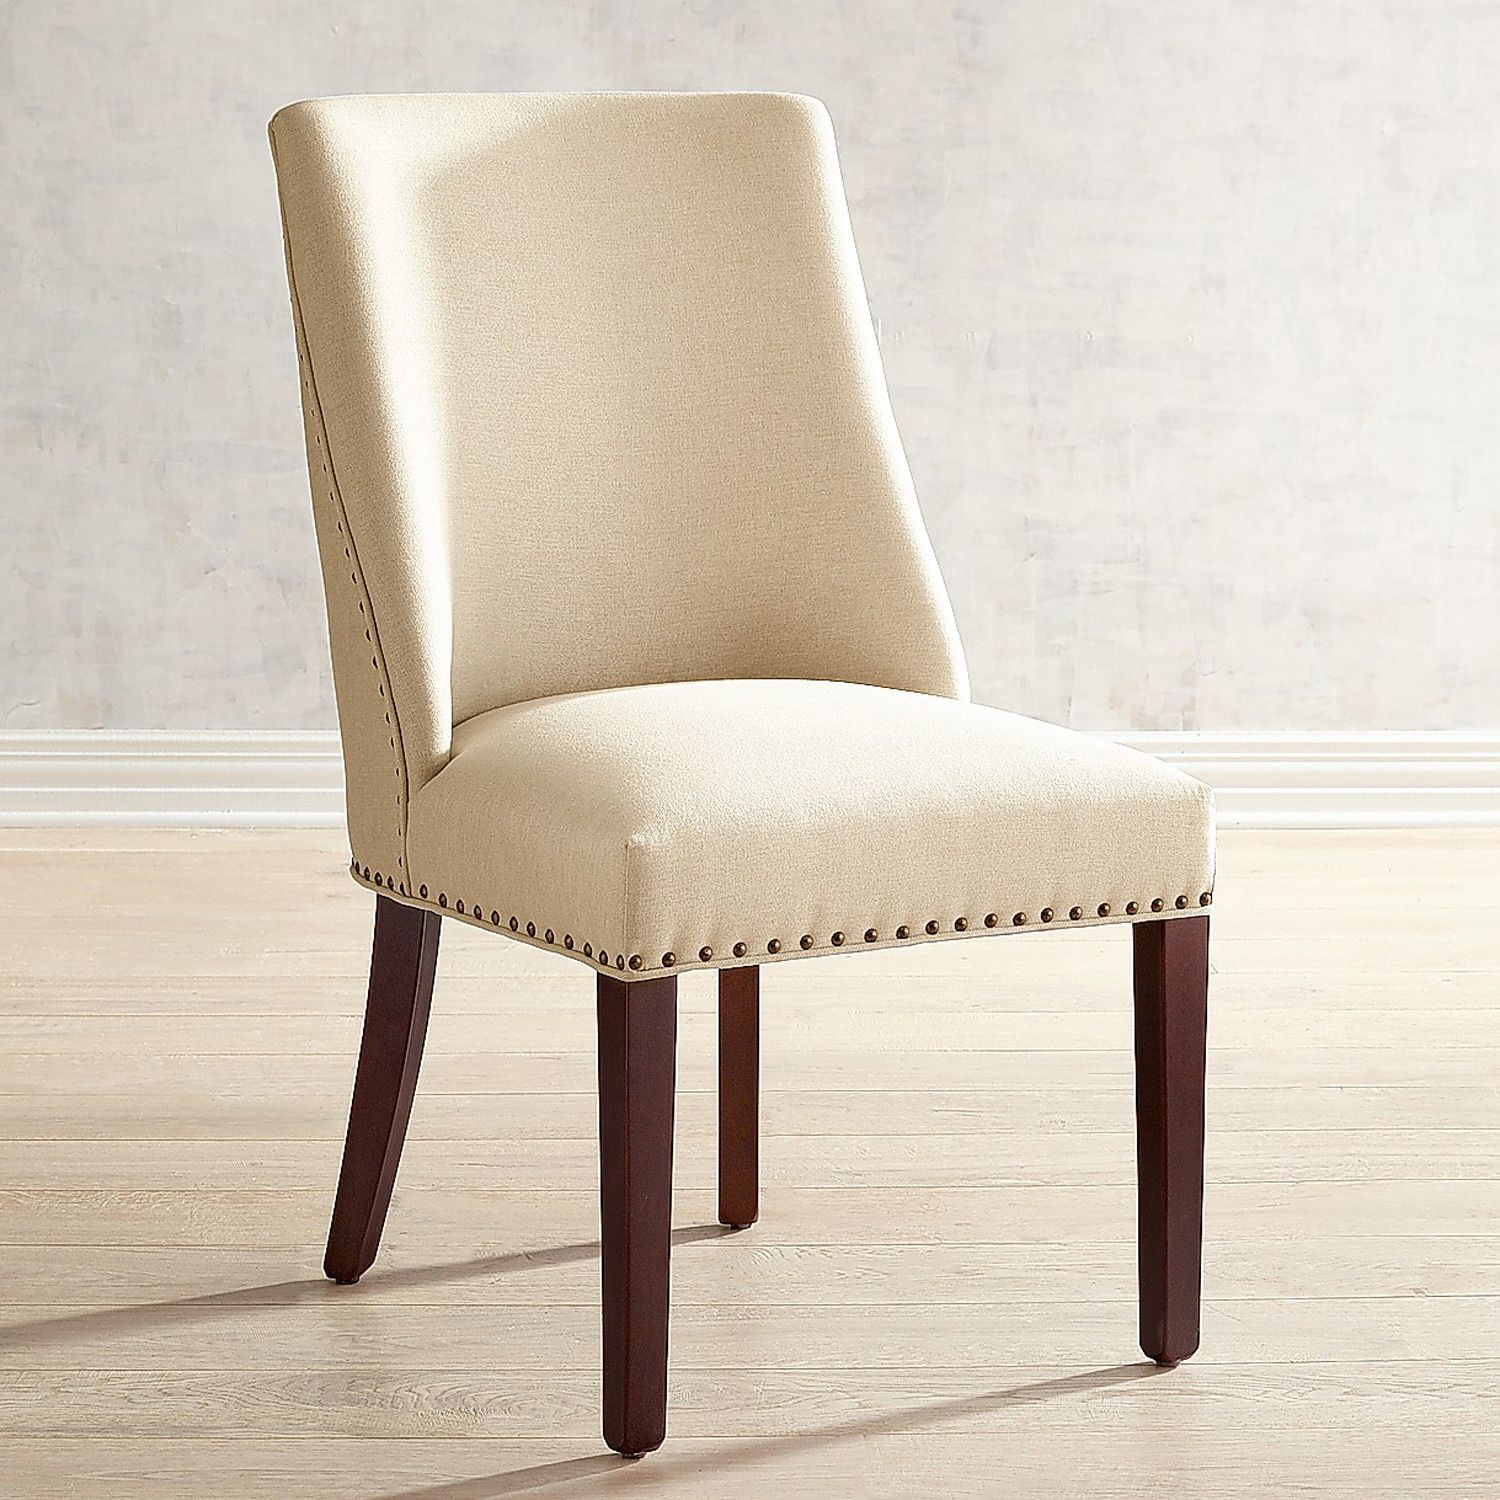 Corinne Linen Dining Chair with Black Espresso Wood